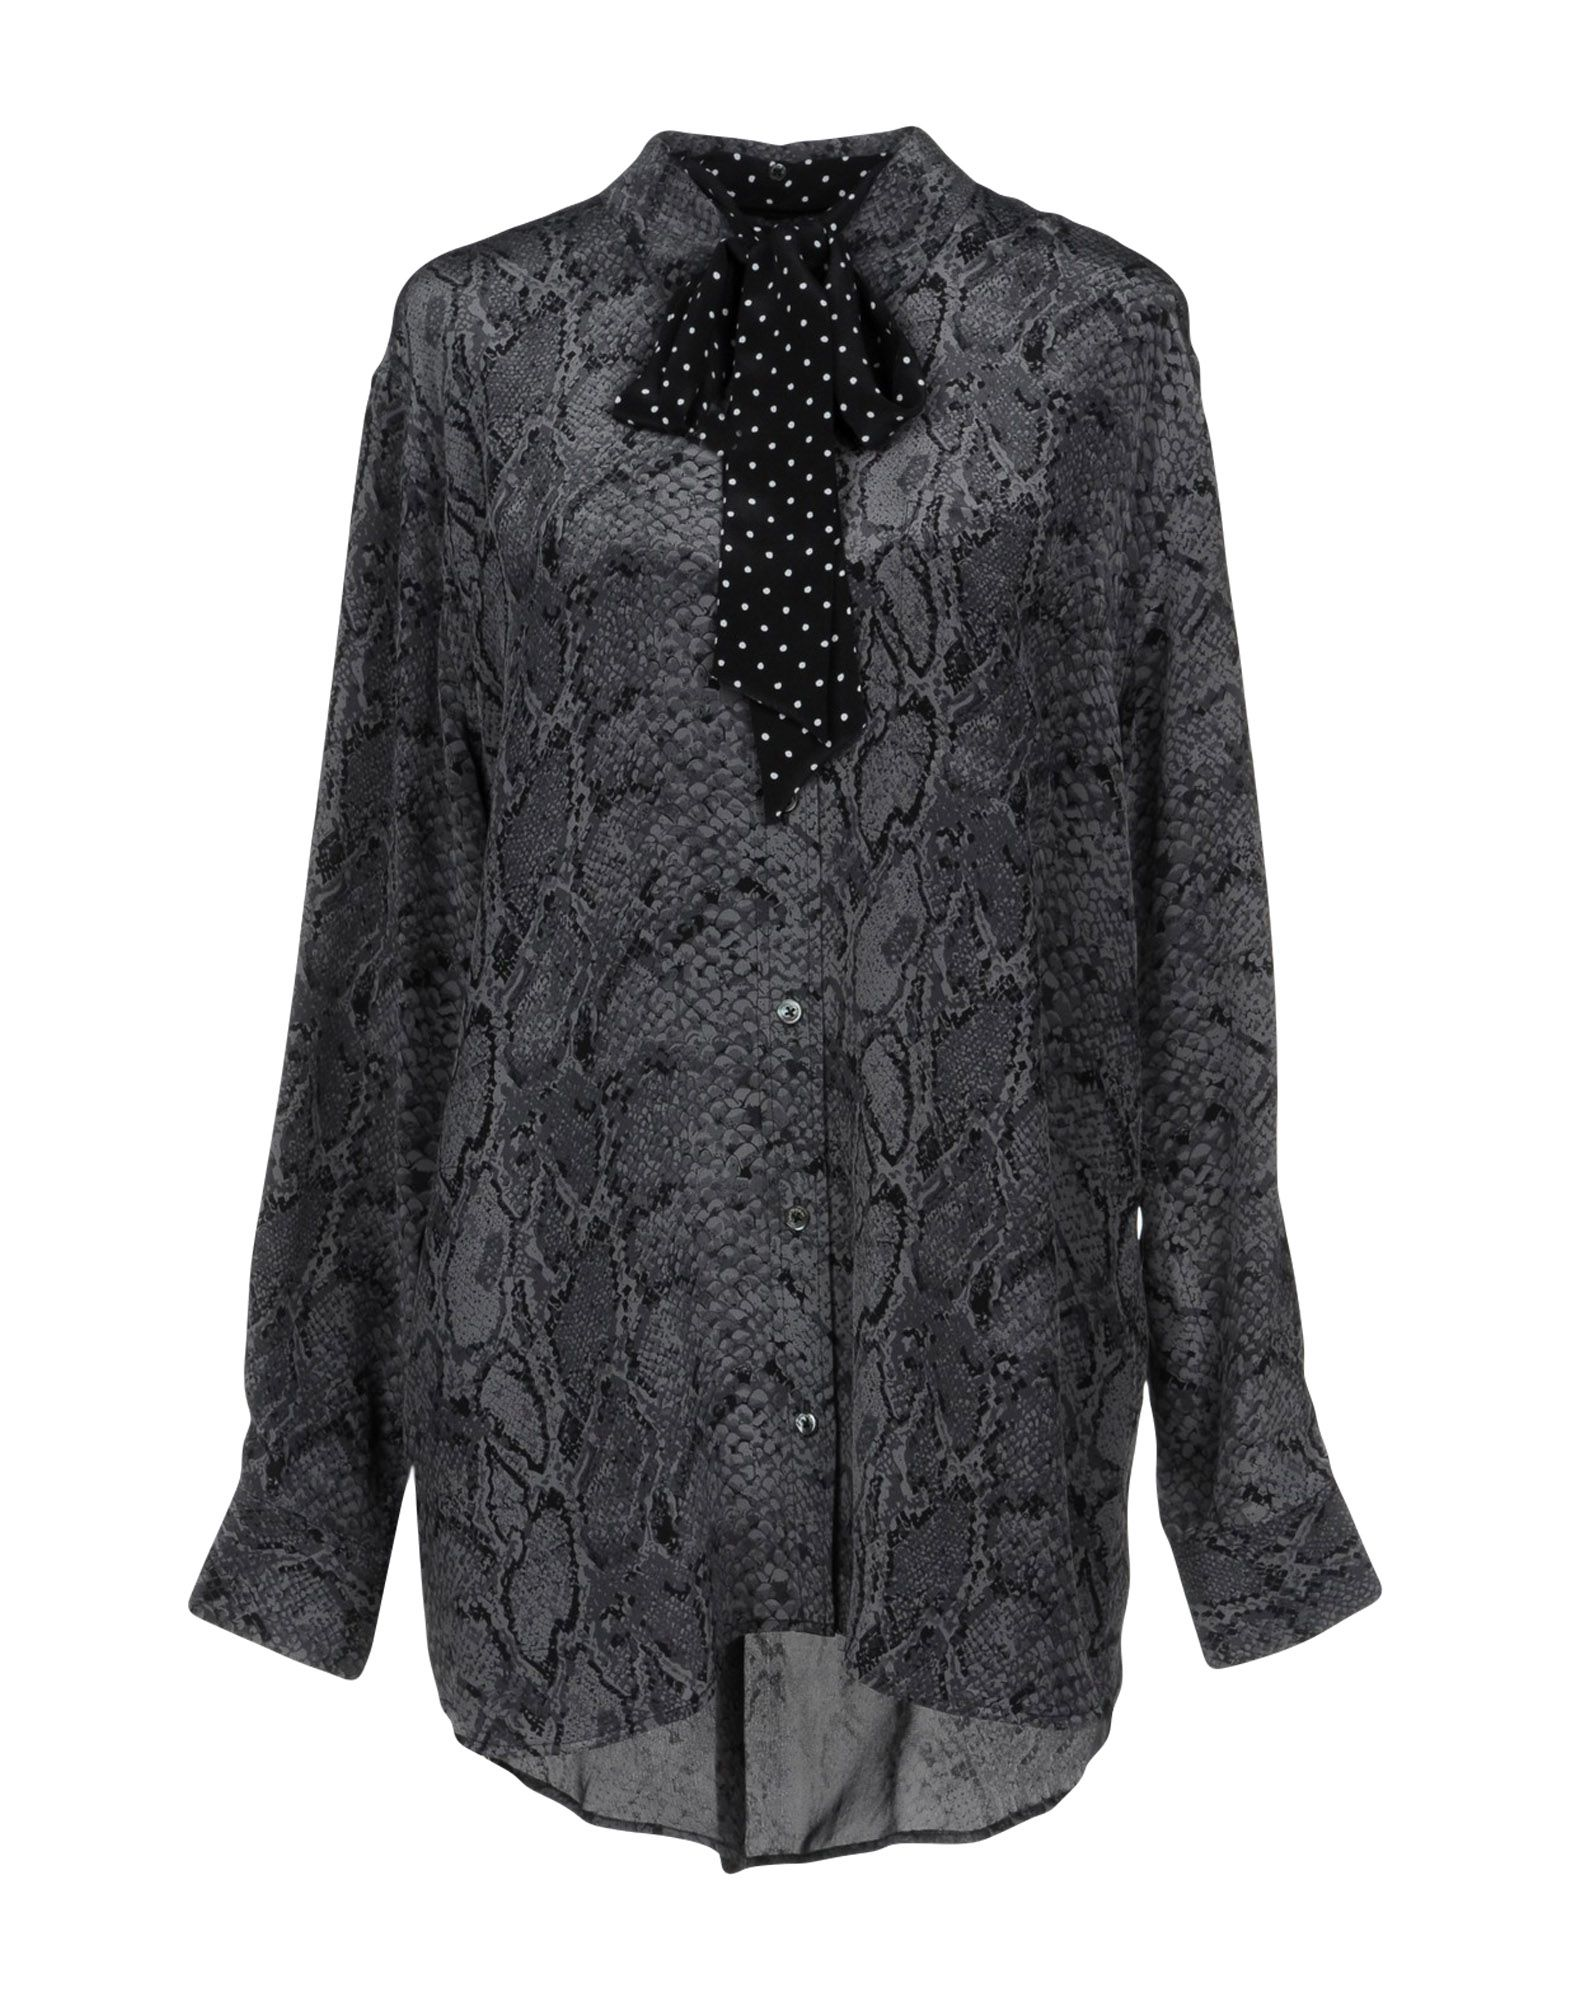 KATE MOSS EQUIPMENT Patterned Shirts & Blouses in Grey